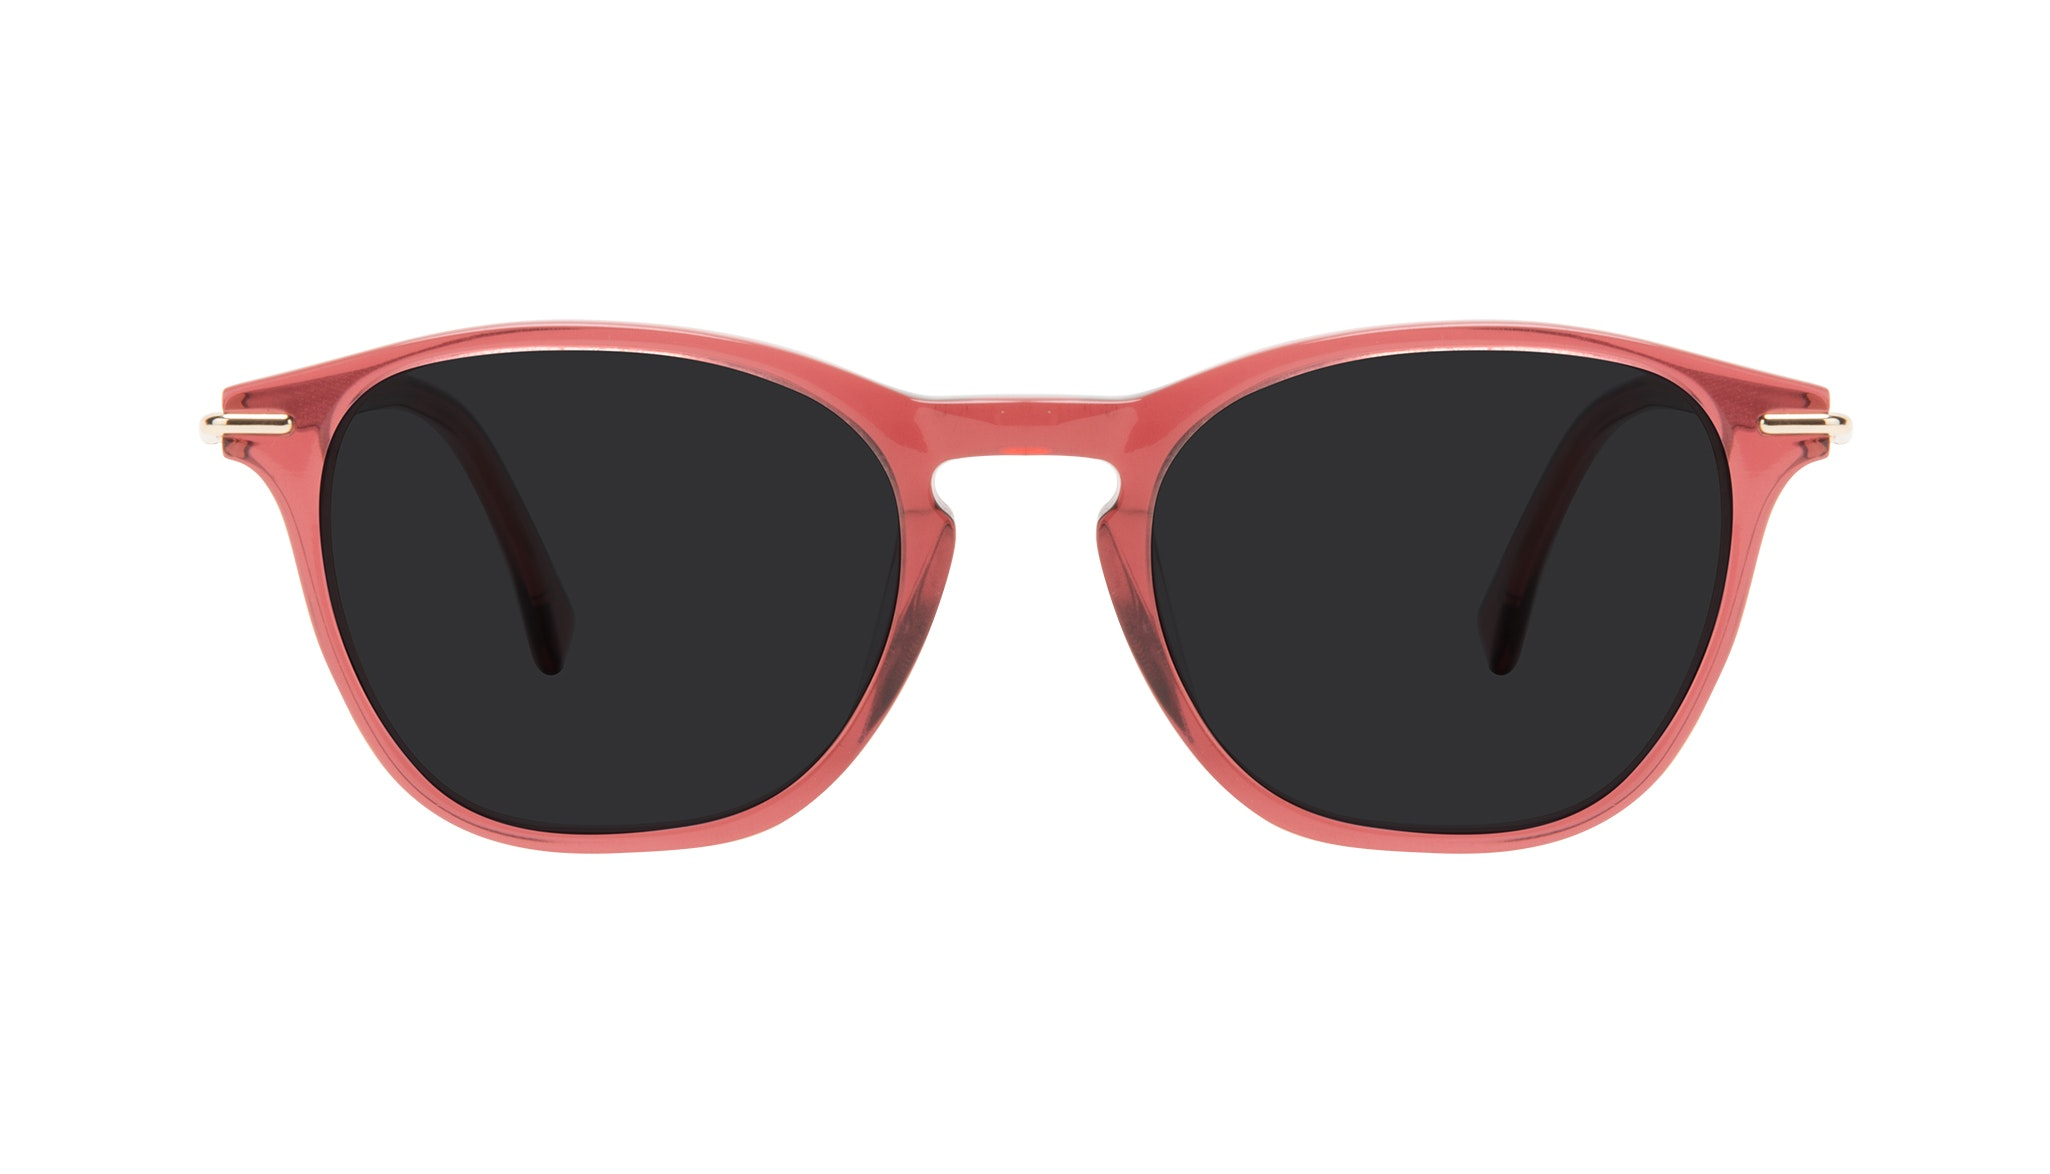 Affordable Fashion Glasses Square Sunglasses Women Charming Cherry